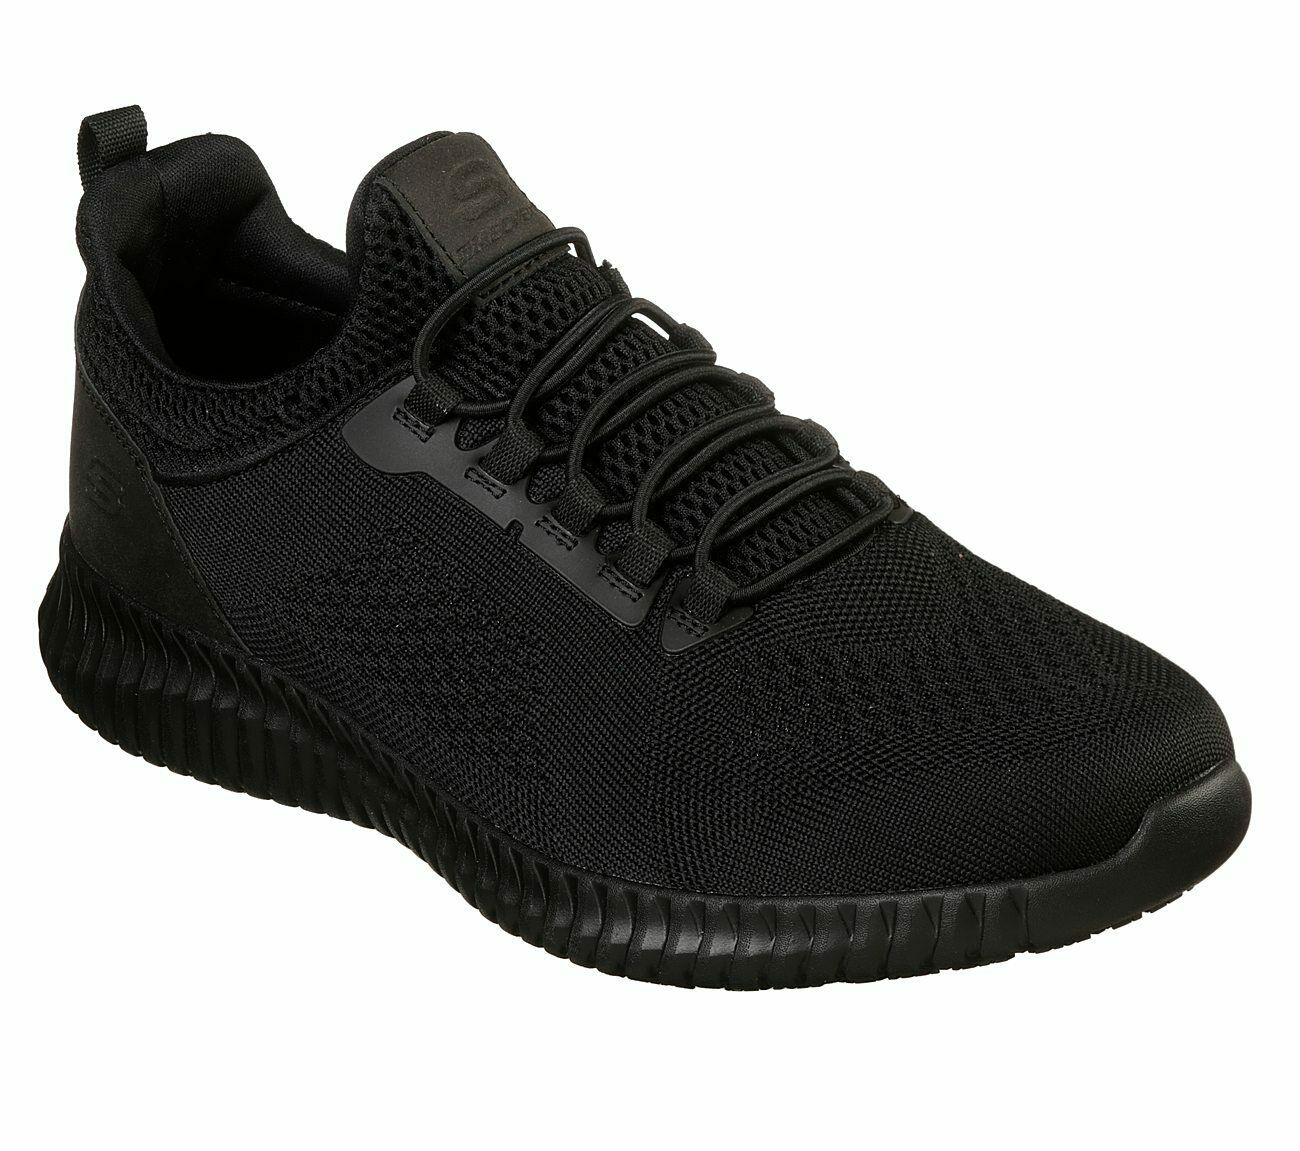 Skechers Wide Fit Black shoes Work Men's Slipon Slip Resistant Memory Foam 77188